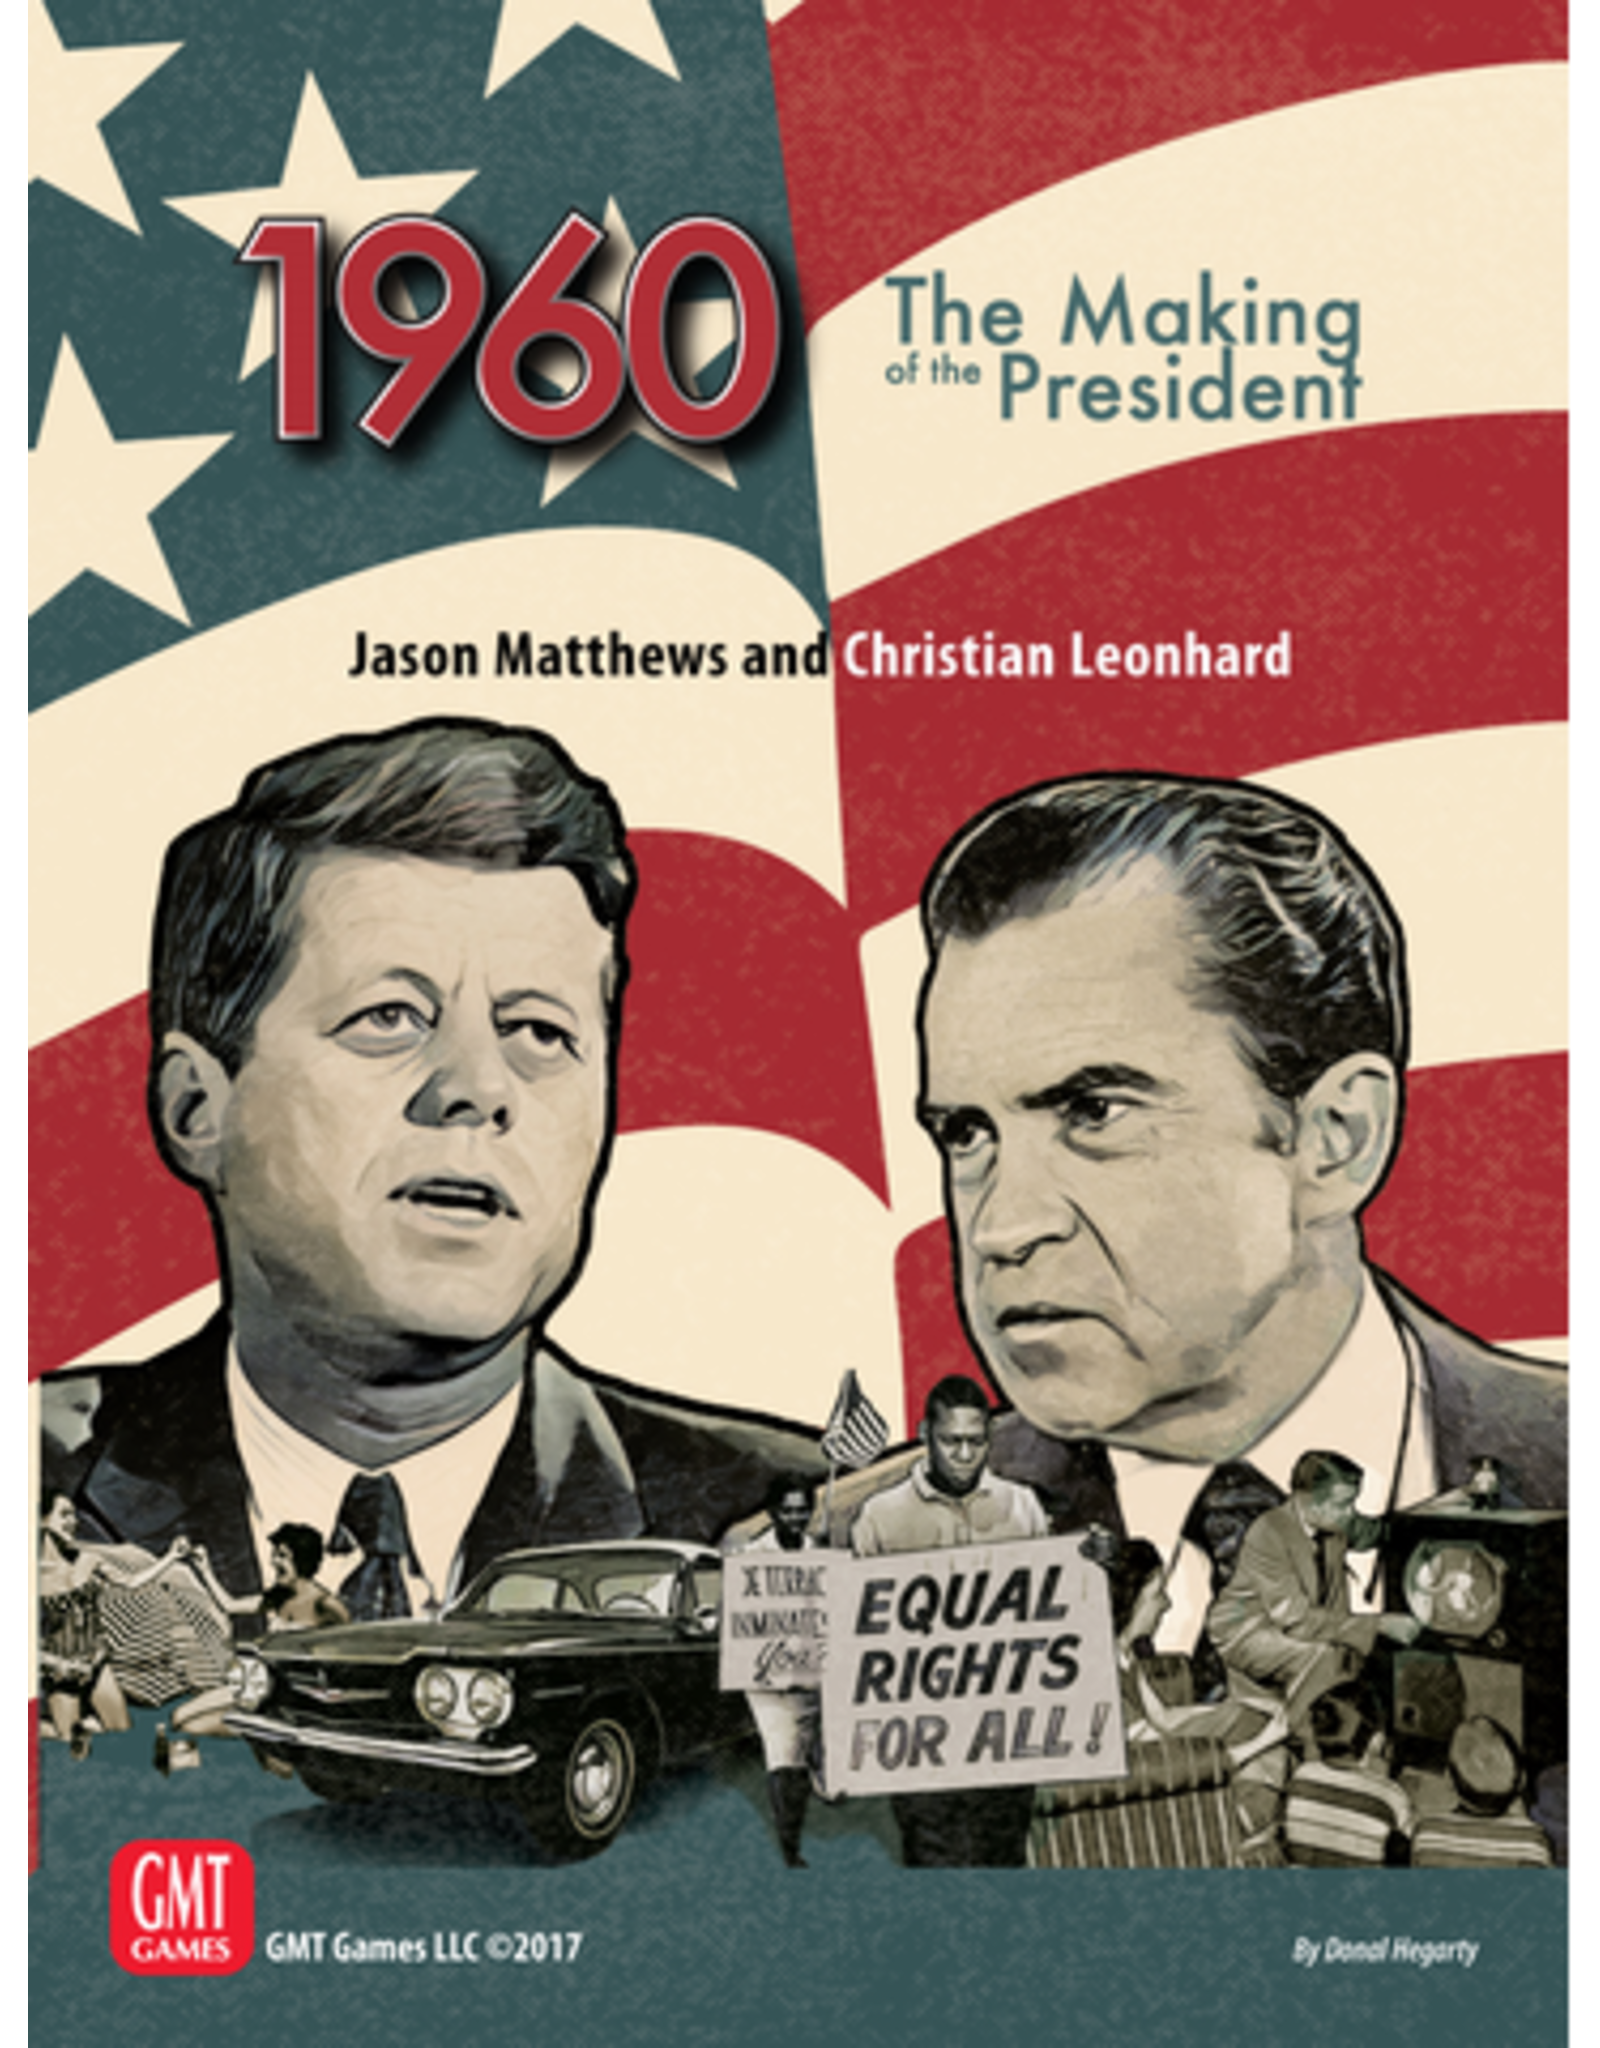 GMT 1960: The Making of the President